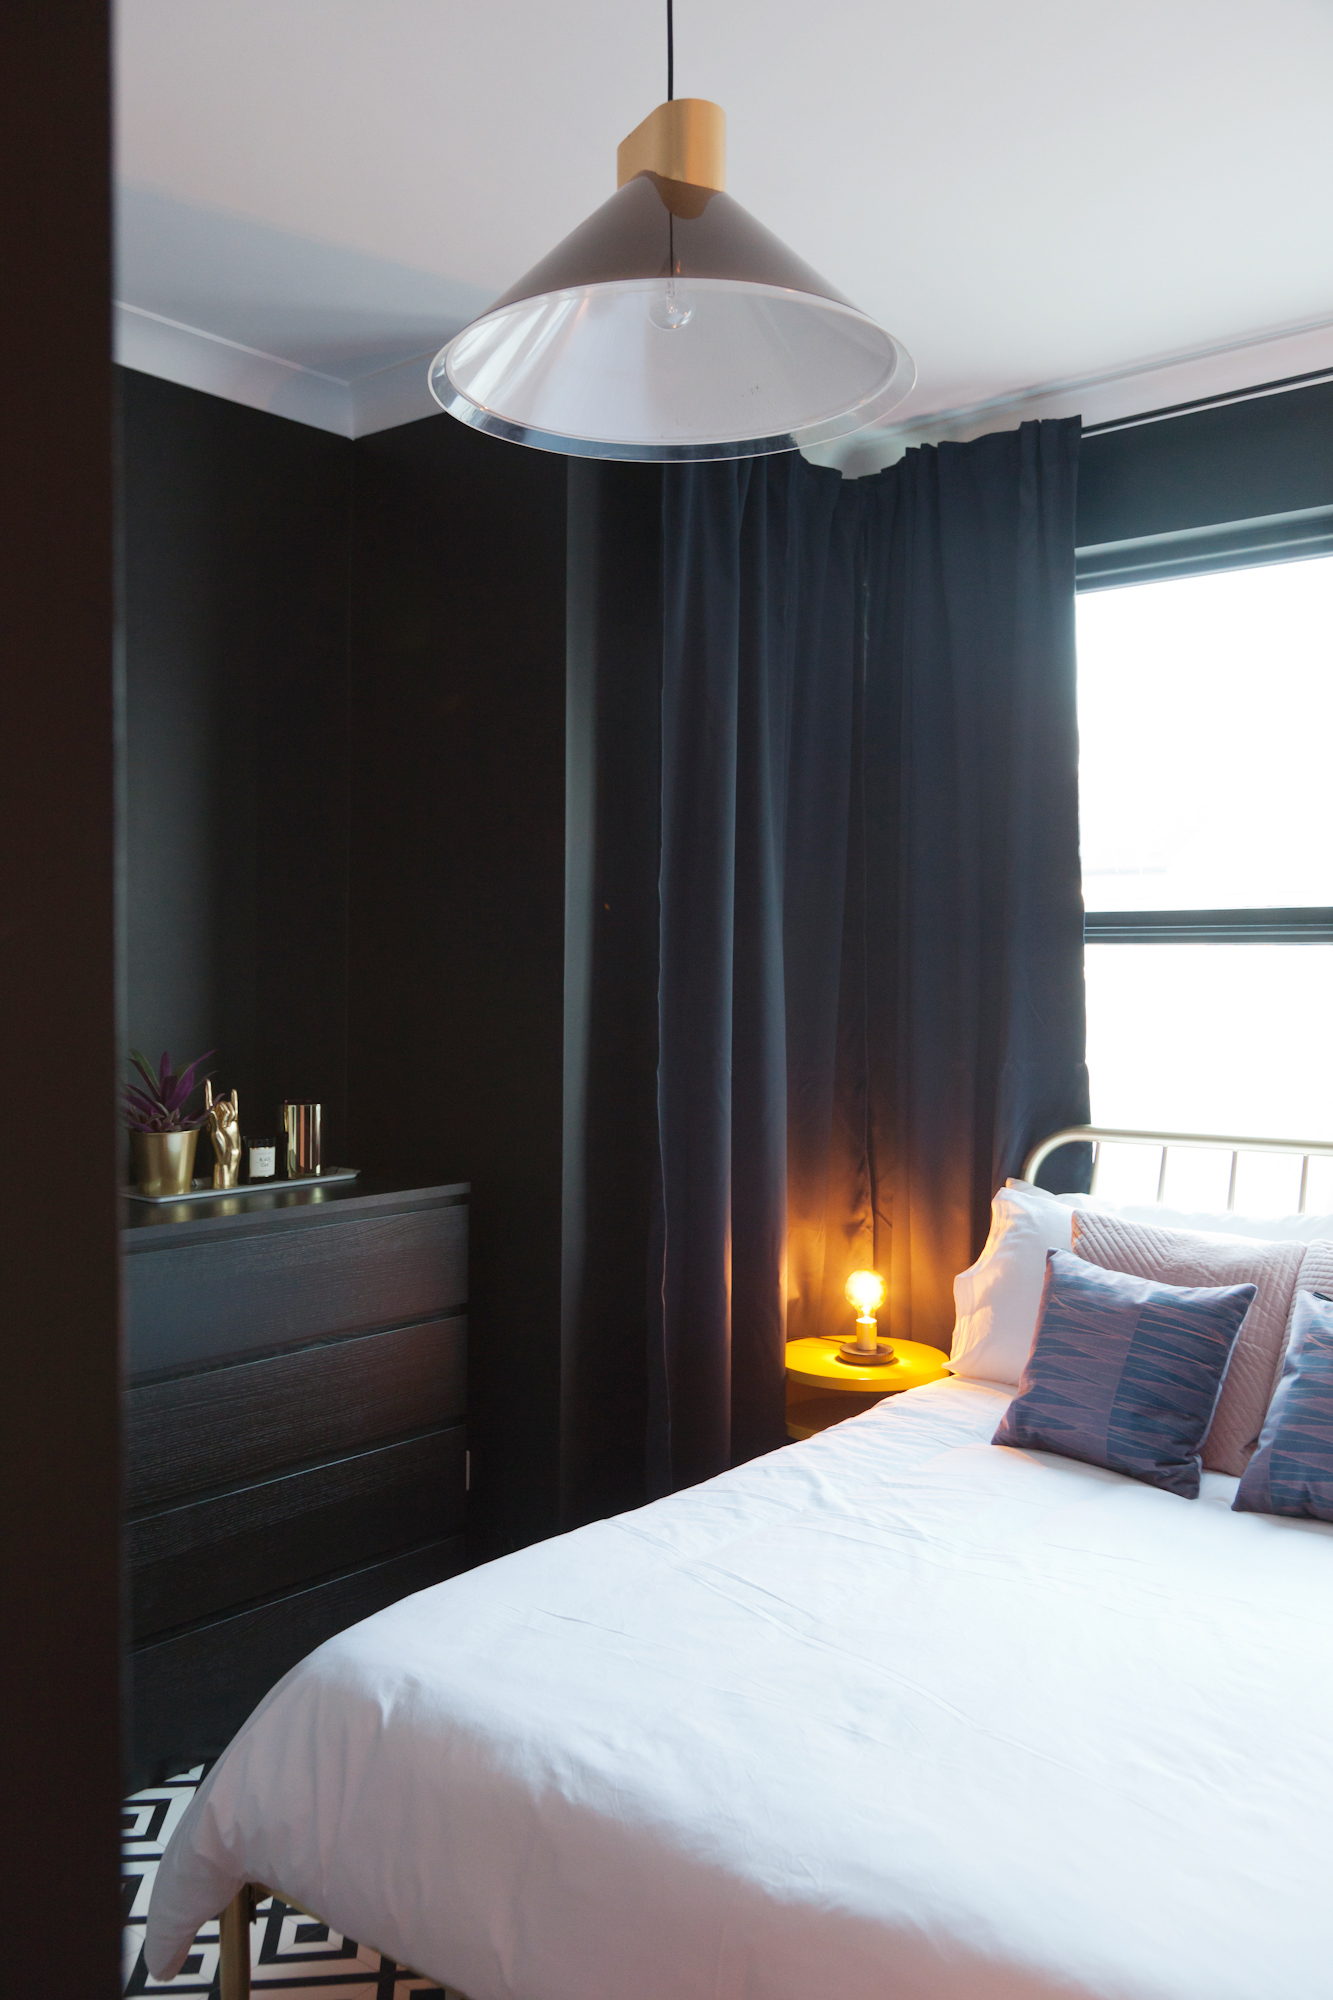 In the bedroom I created an eclectic decor look with black matte walls, gold accents, black and white geometric flooring and a custom neon sign.